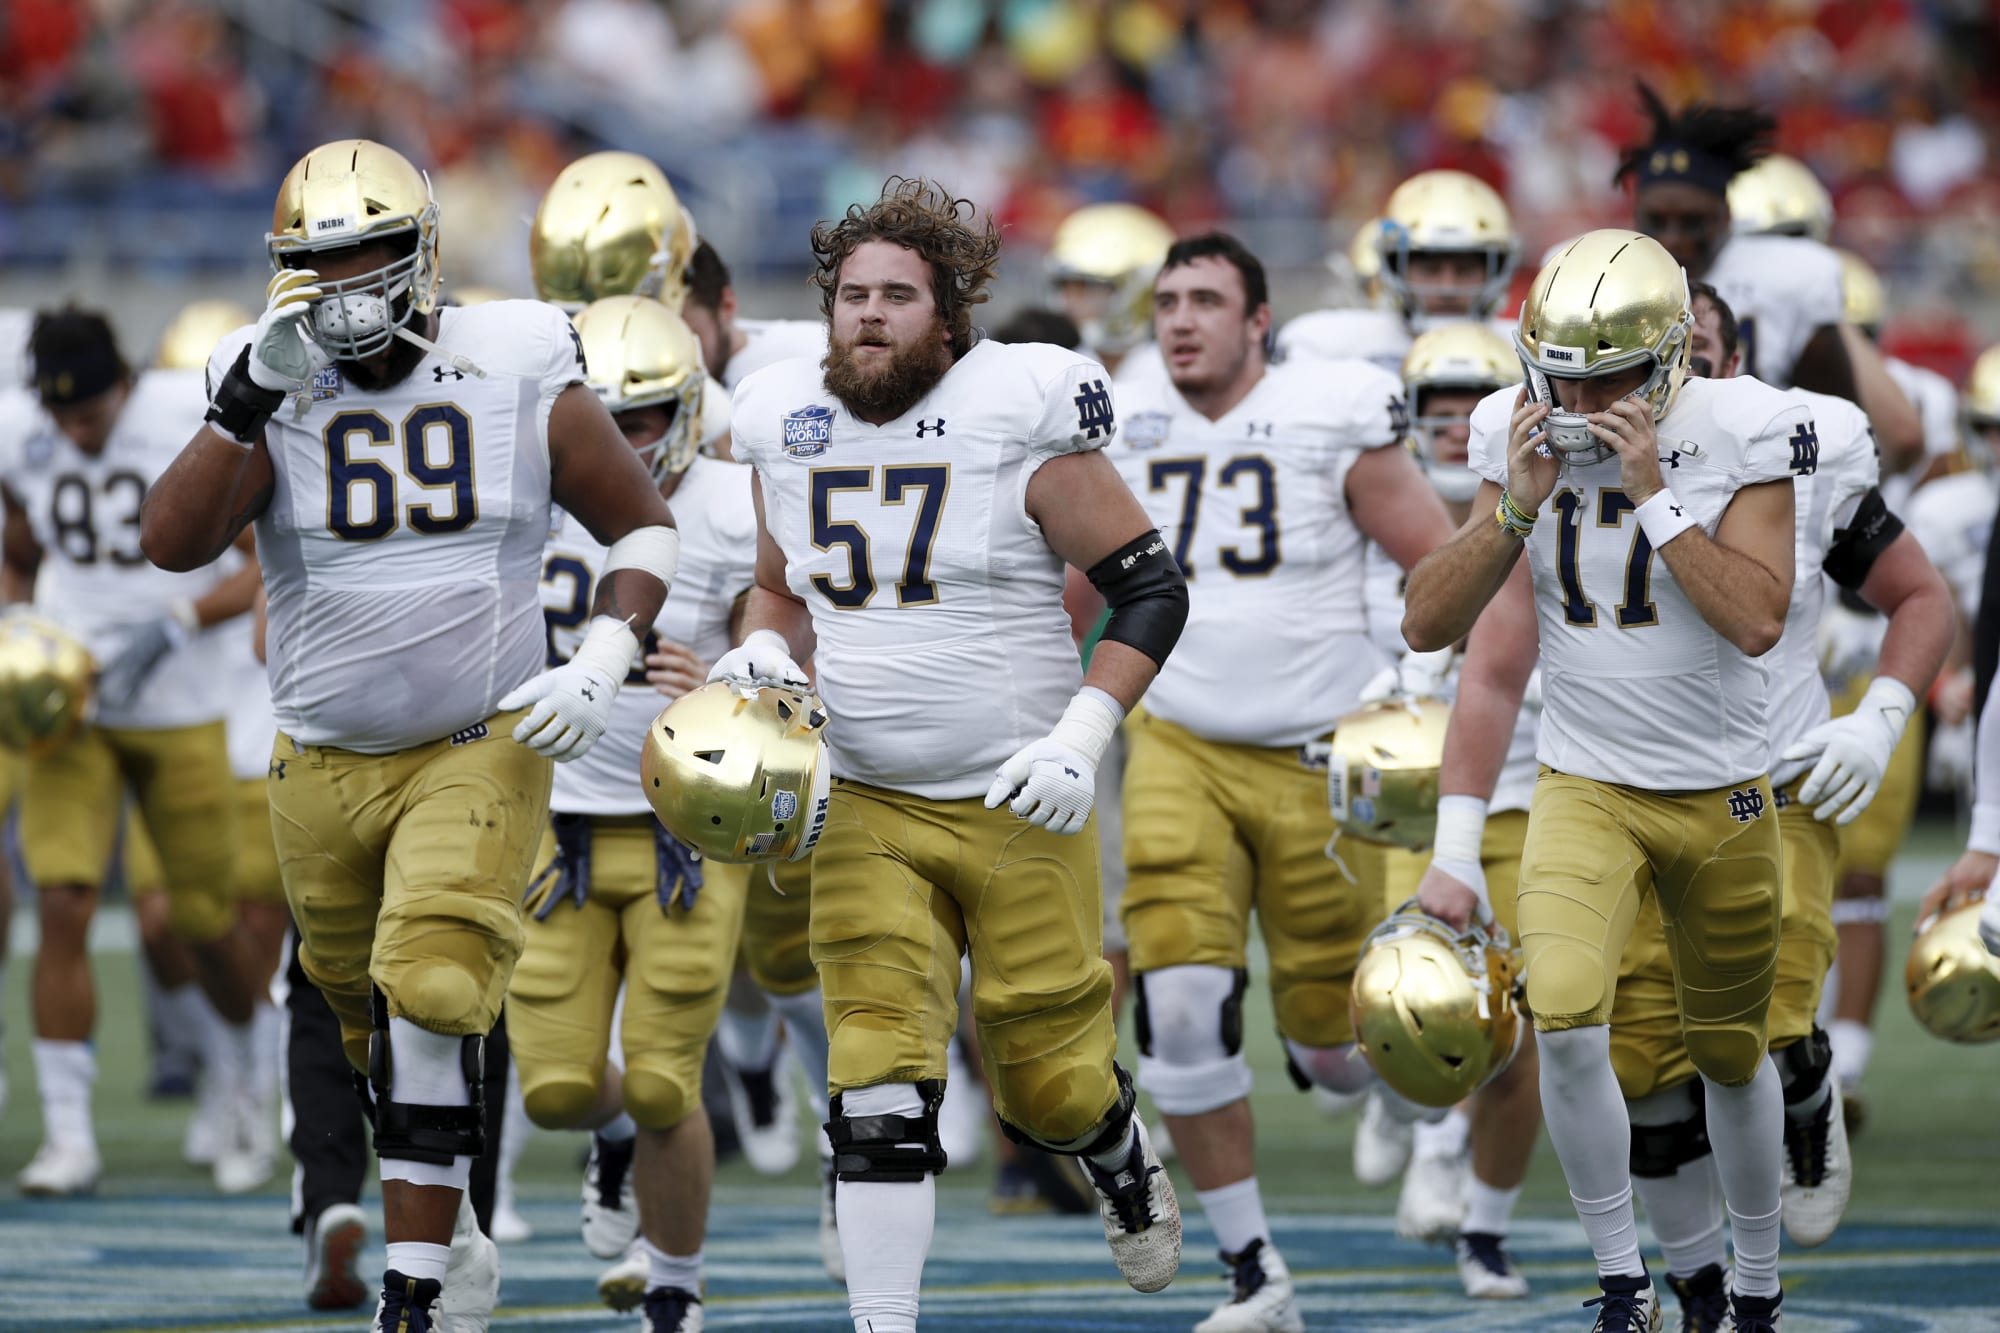 Notre Dame football gets great news regarding COVID-19 results